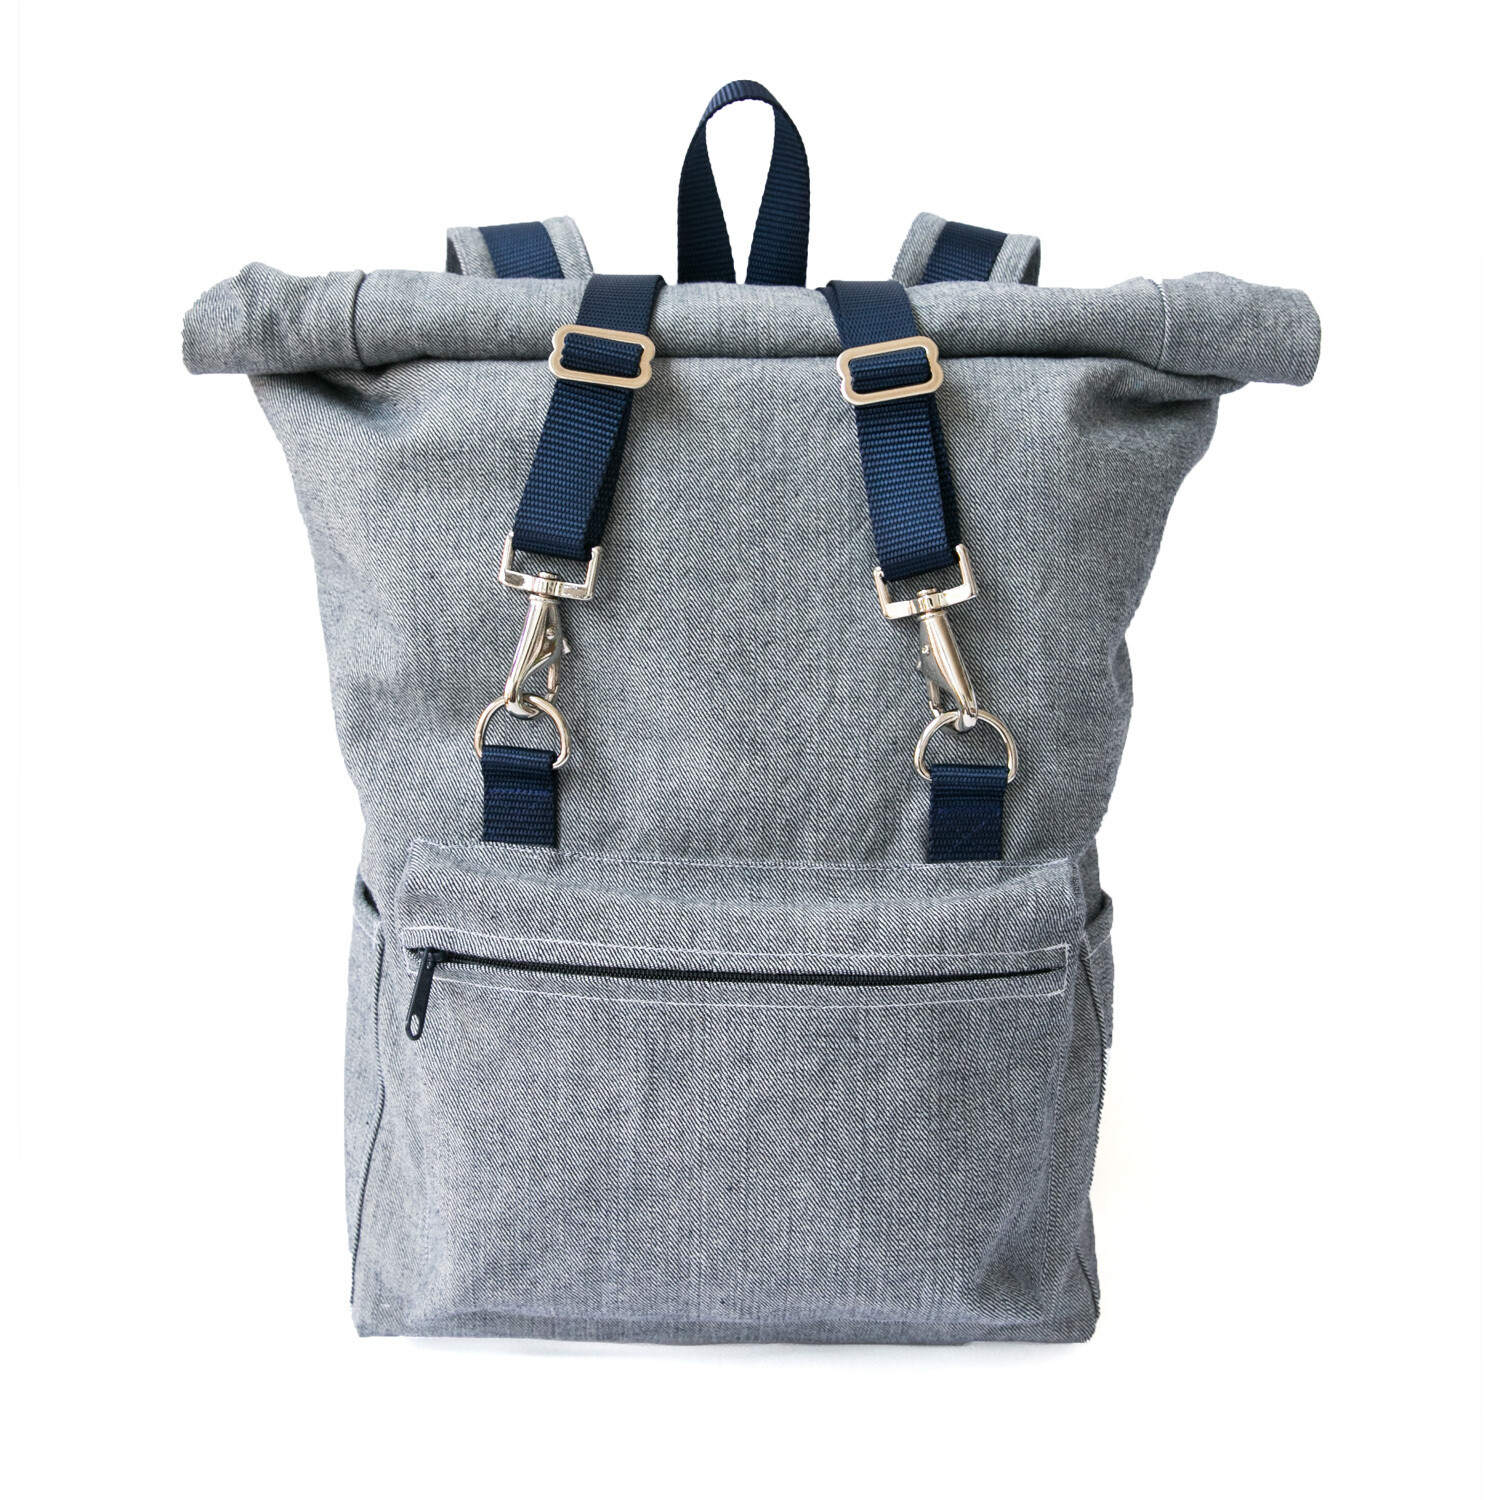 Desmond Roll Top Backpack Pattern